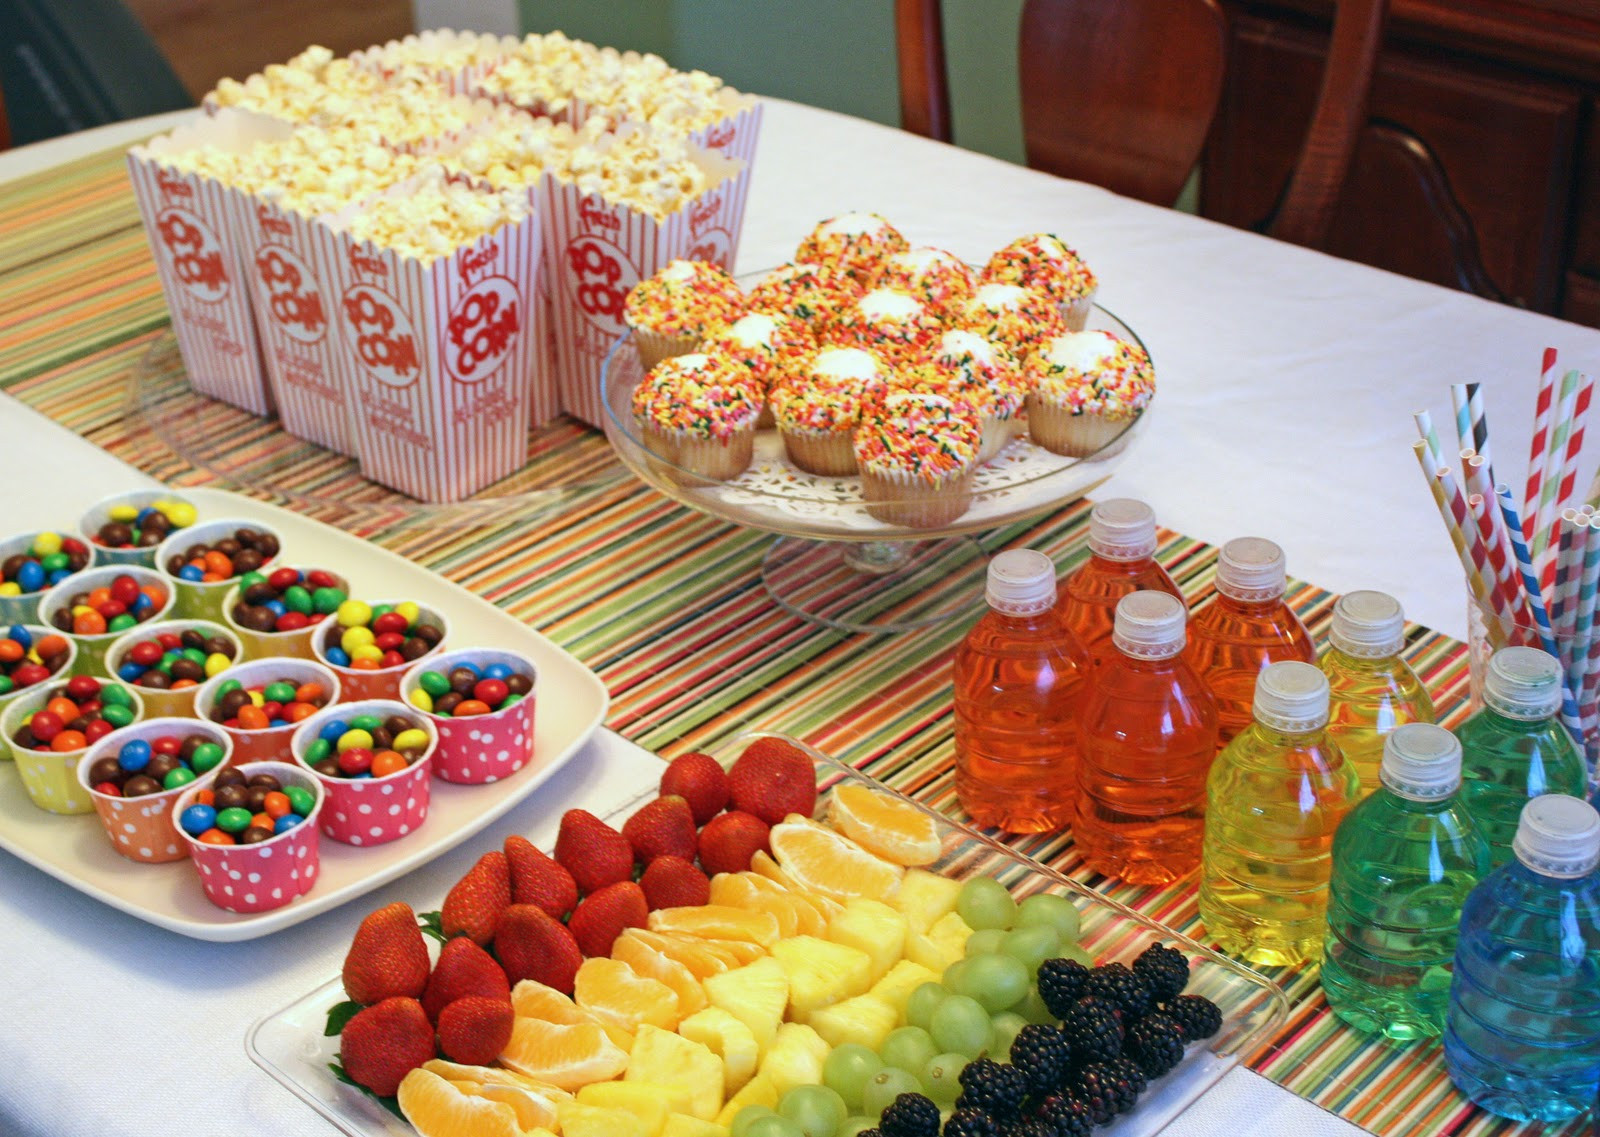 Party Food Ideas For Teenagers  Dreaming In Scraps Muppets rainbows and 10 crazy girls